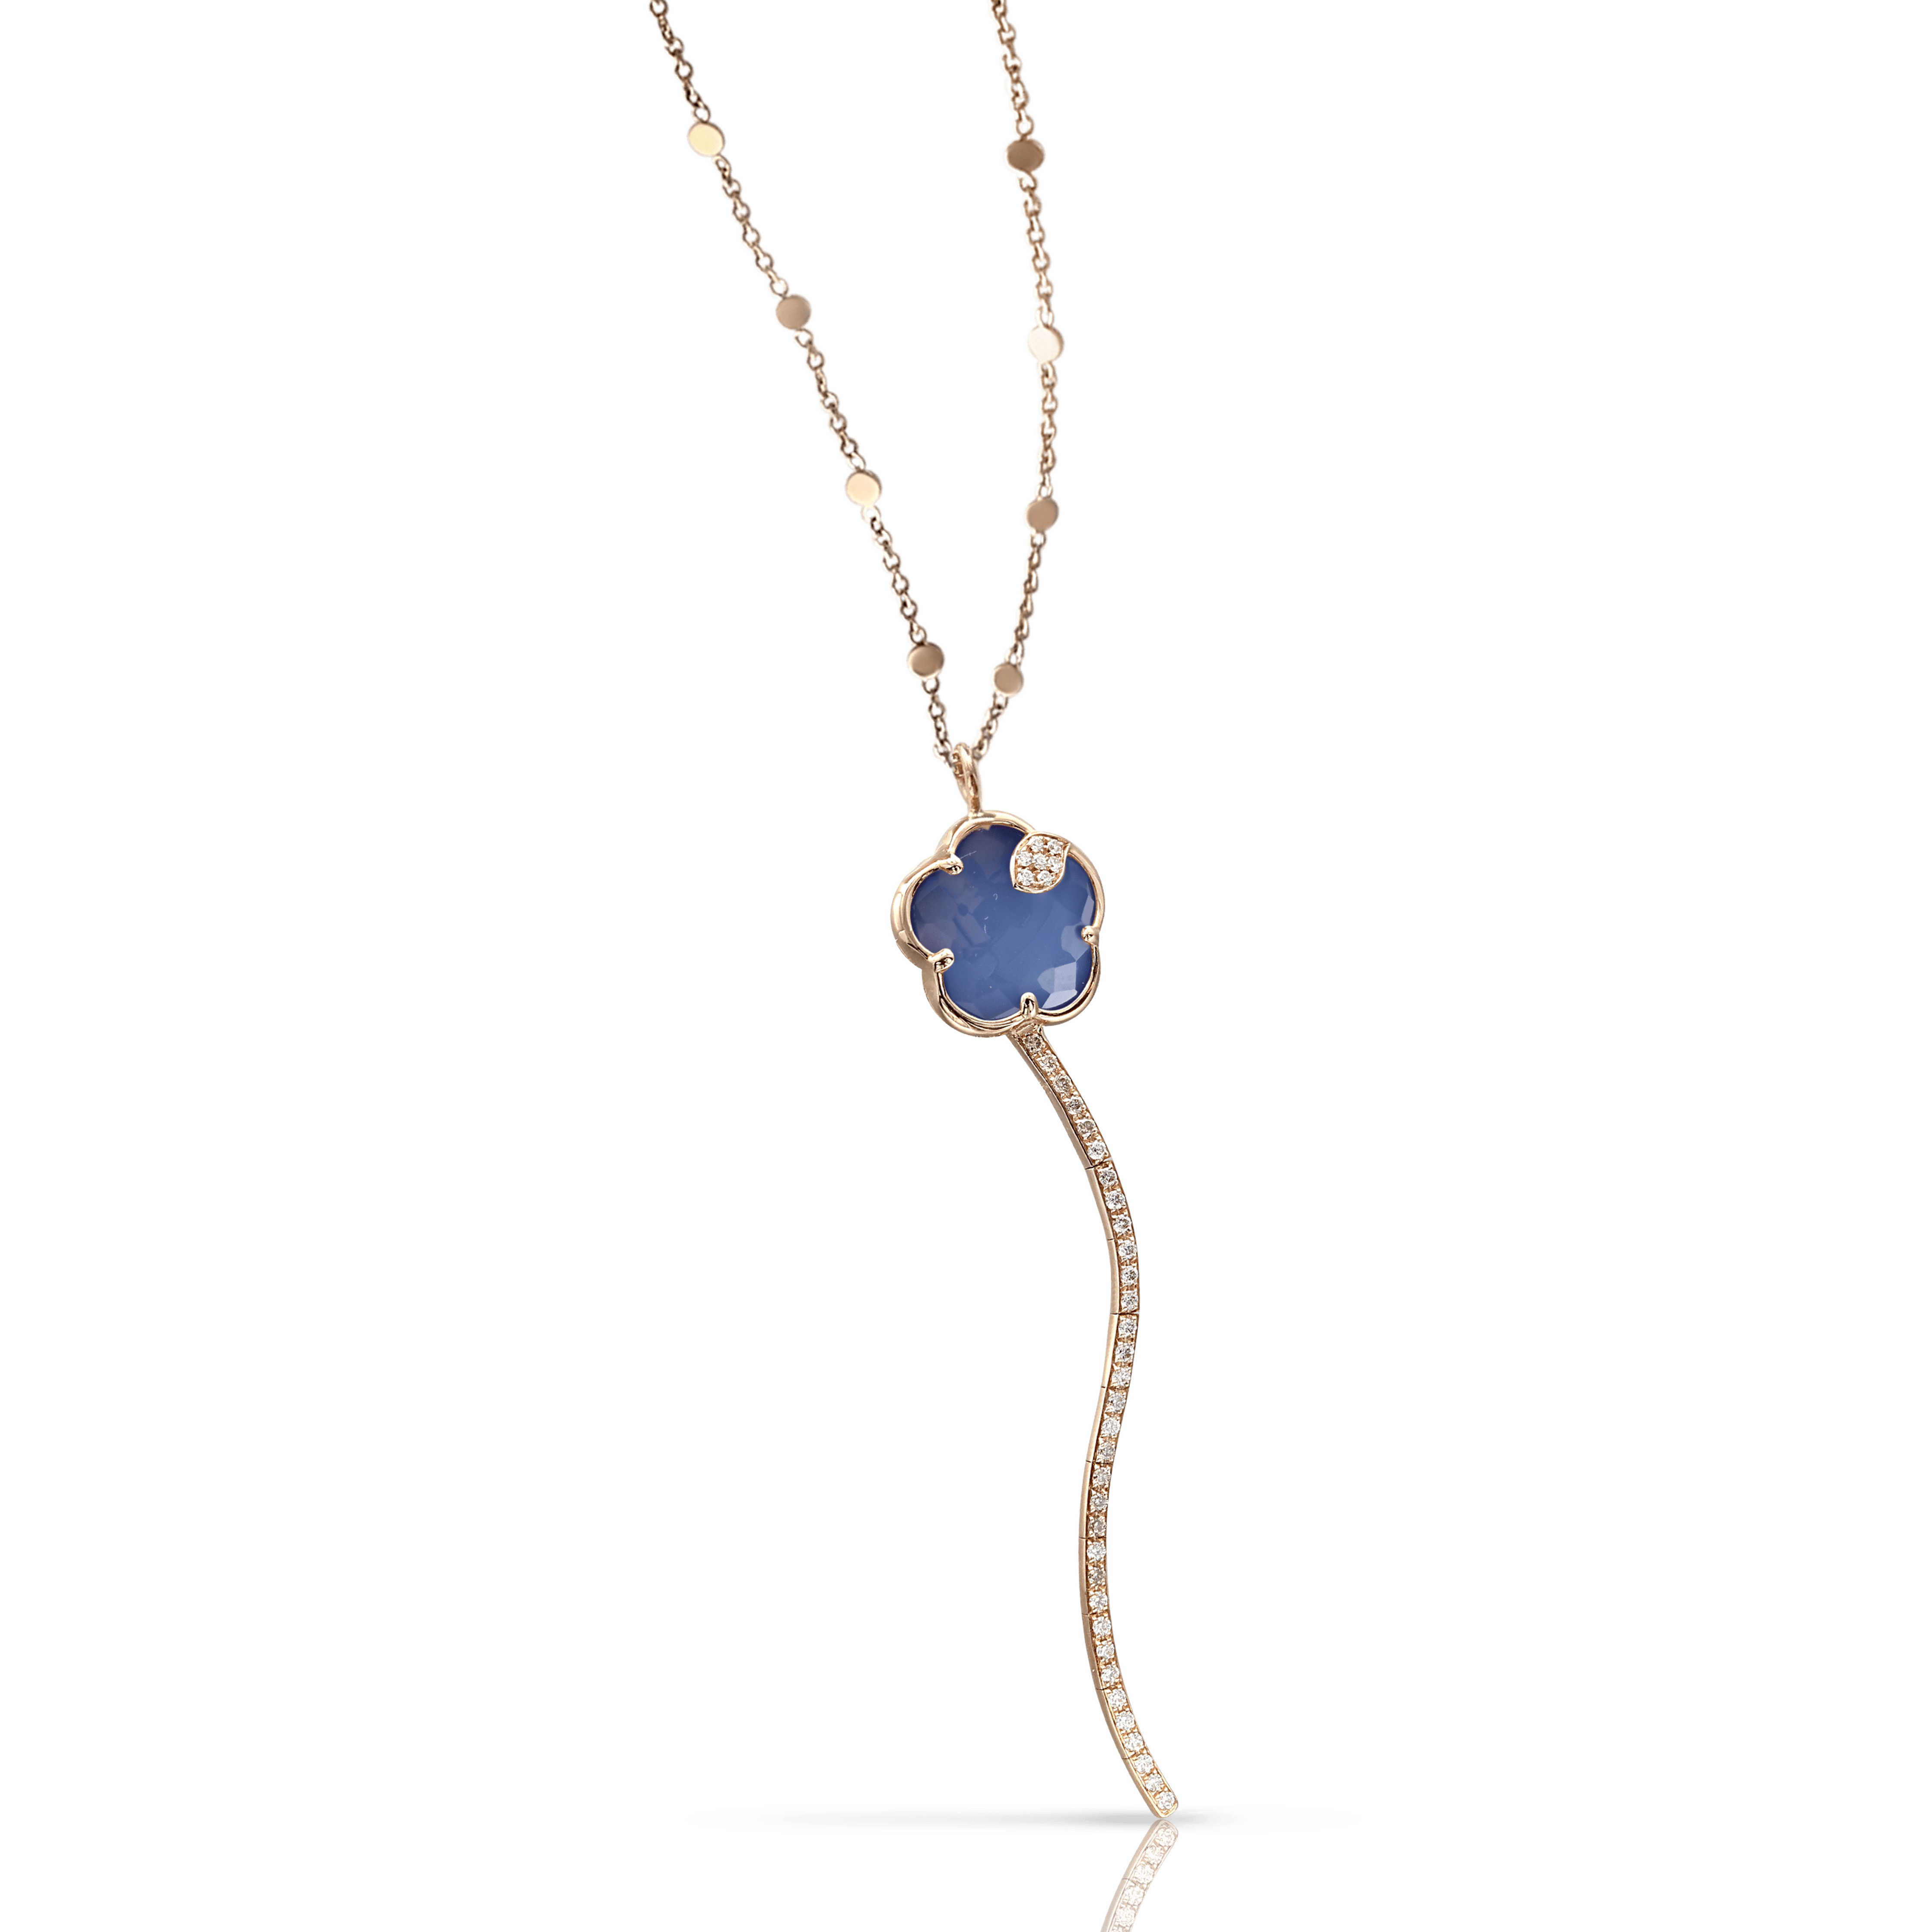 18k Rose Gold Joli Necklace with White Agate and Lapis Lazuli Doublet, White and Champagne Diamonds